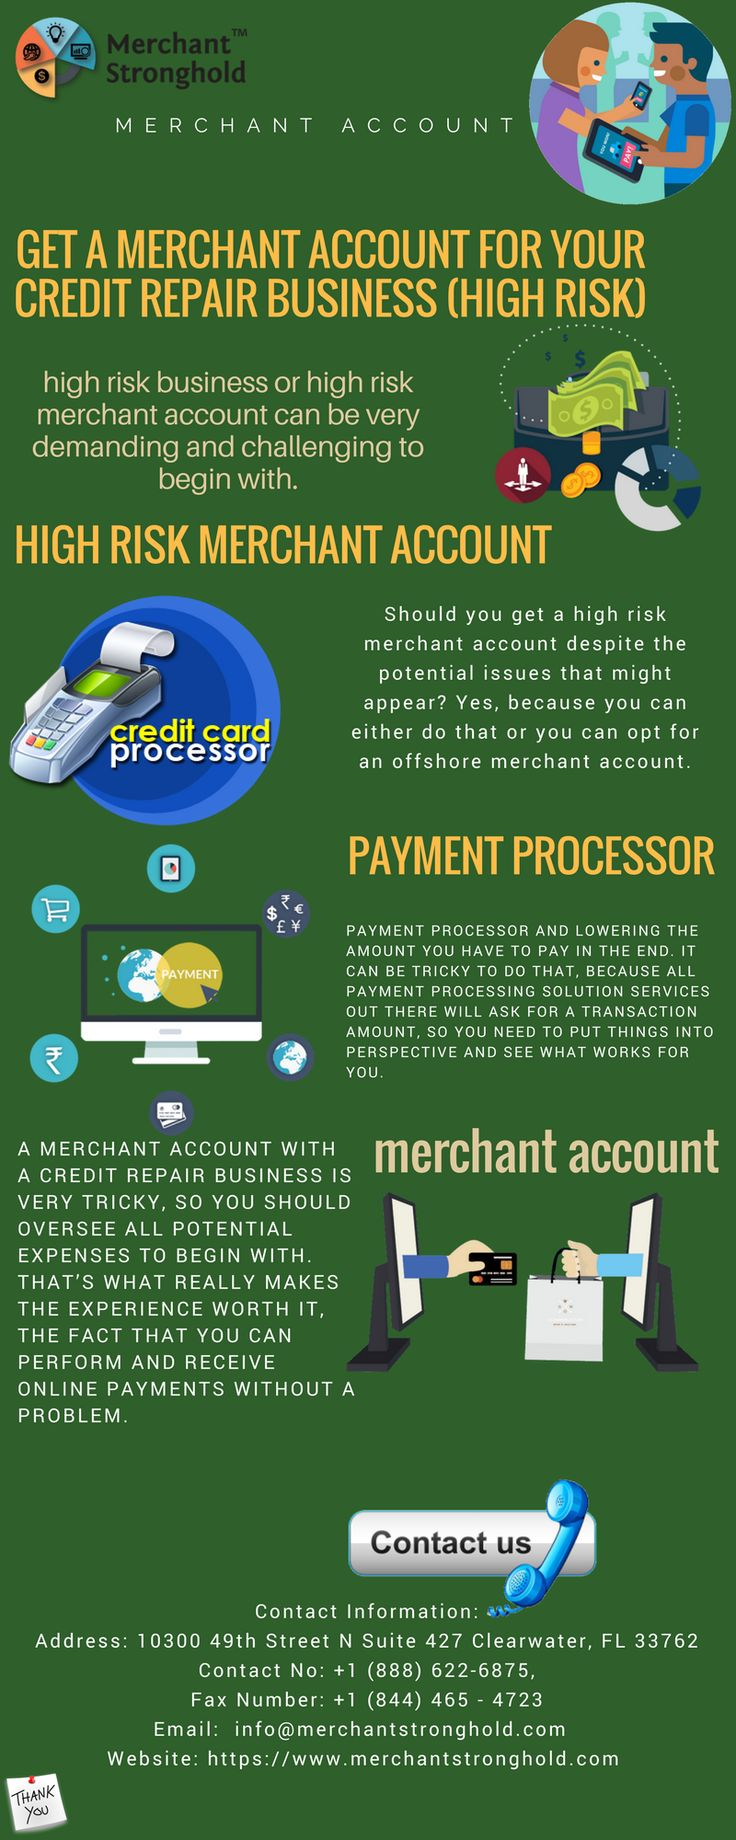 Get a high risk merchant account for your credit repair